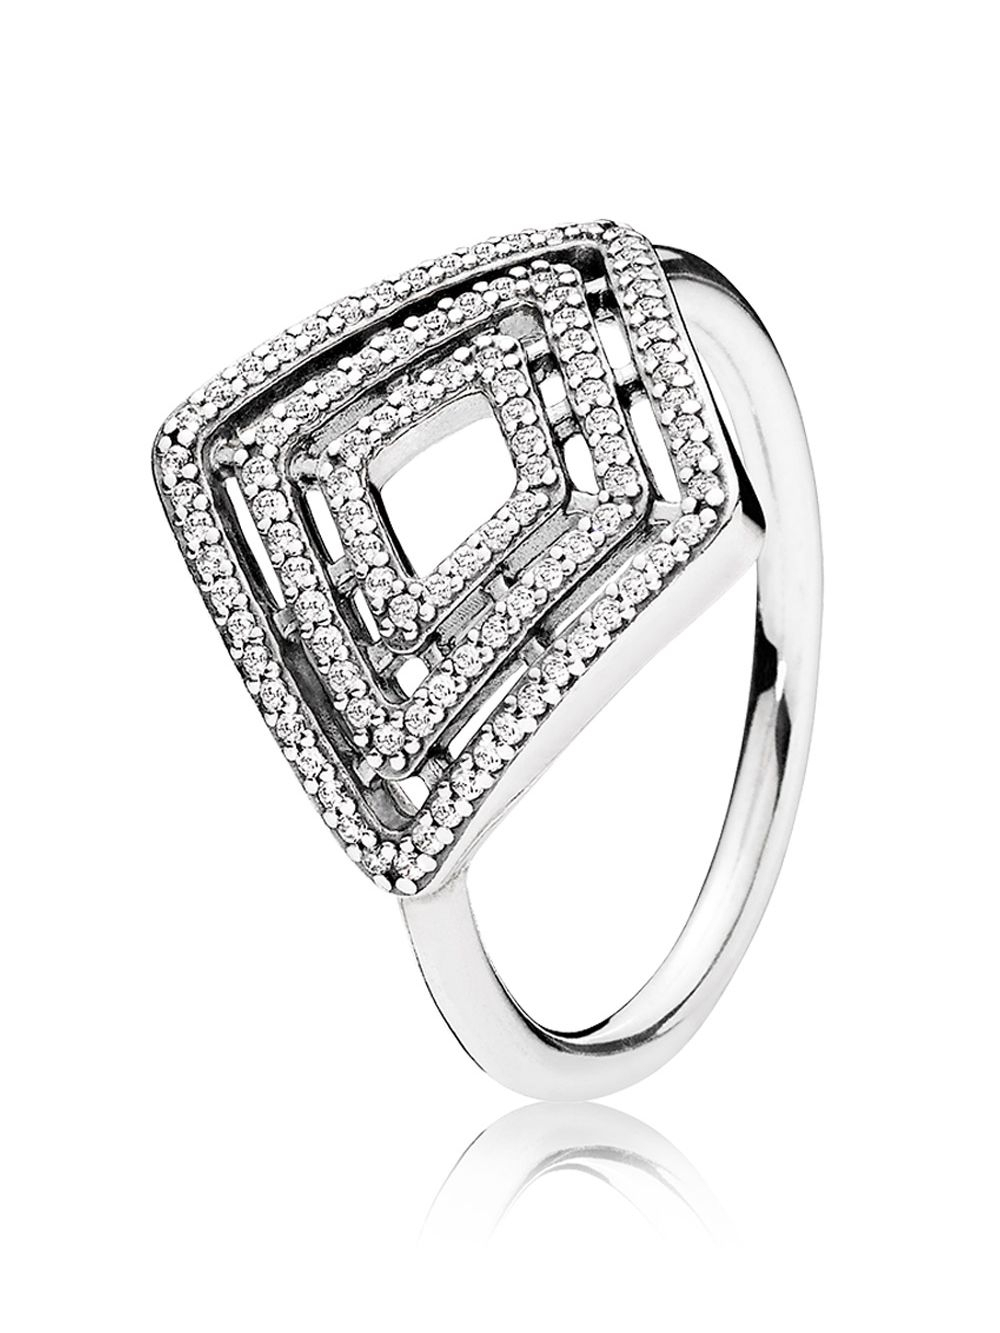 Pandora 196210Cz Ladies Ring Geometrical Lines Pertaining To 2017 Sparkling & Polished Lines Rings (View 15 of 25)